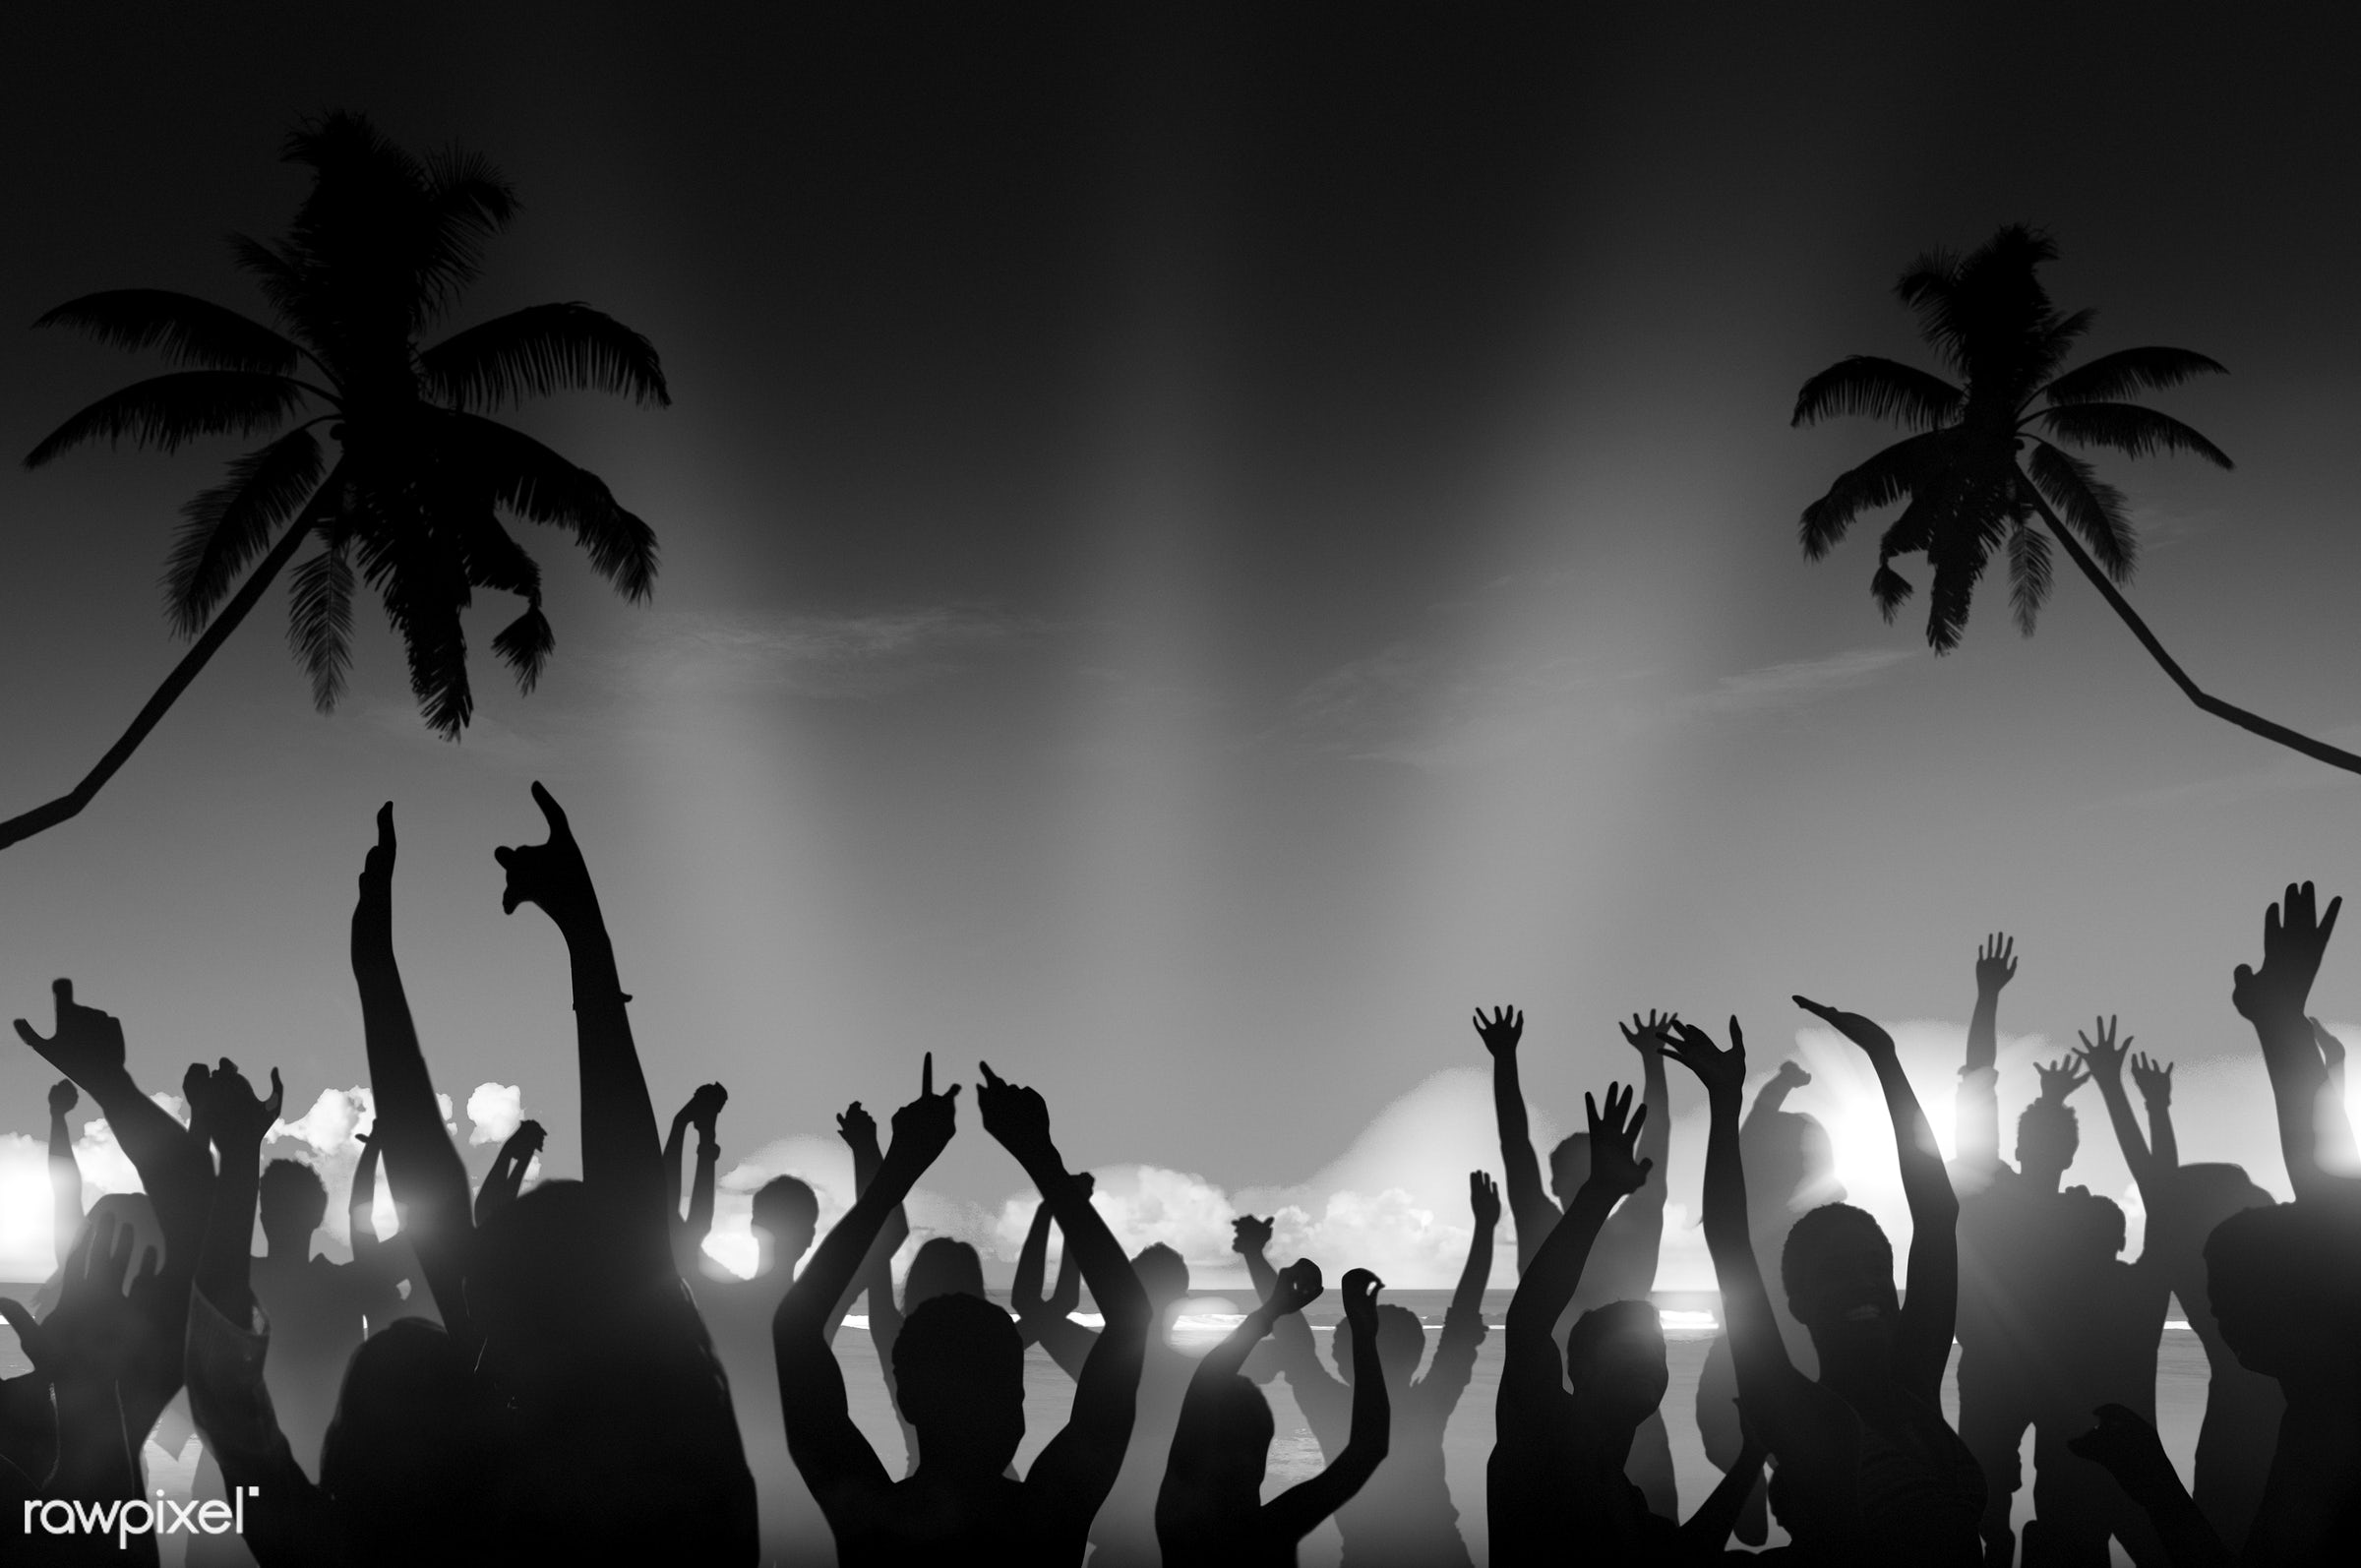 dusk, alcohol, arms outstretched, arms raised, back lit, beach, beer, blue, celebration, coconut palm tree, community, copy...